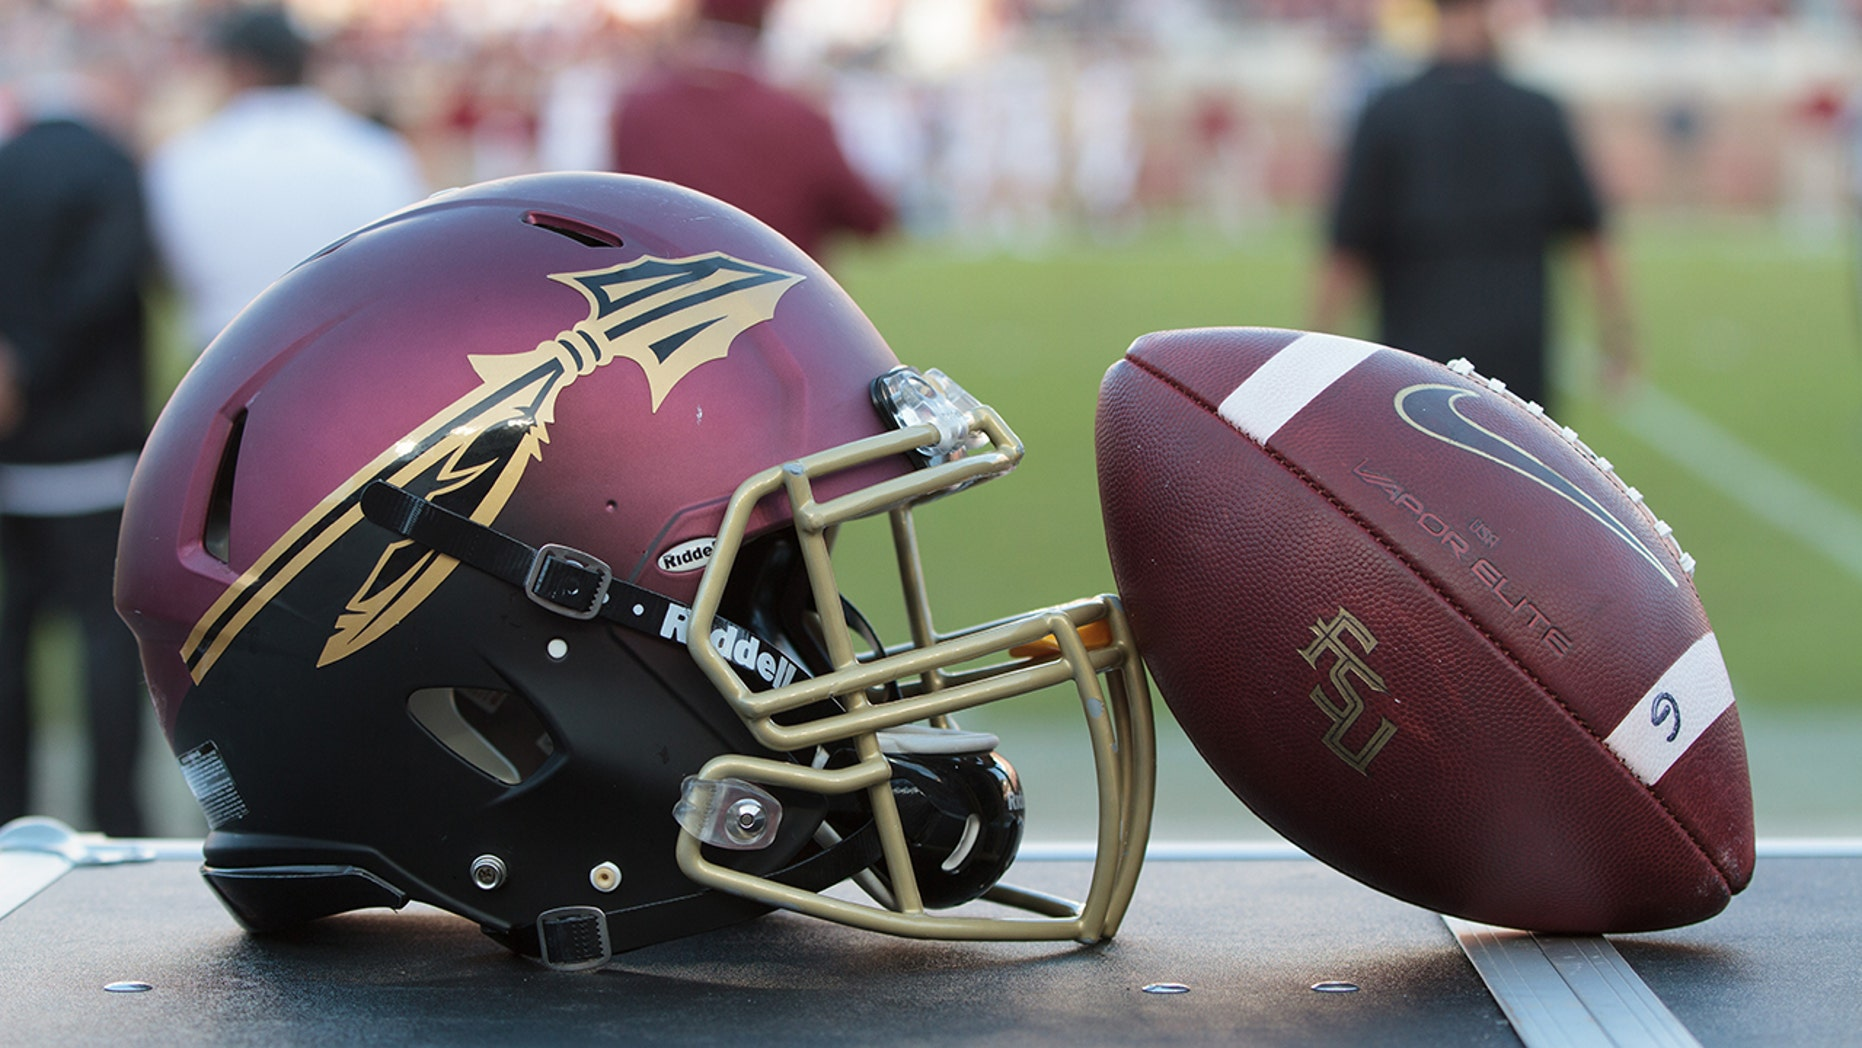 The Florida State Seminoles football recruiting's Twitter account was blasted Monday over the handle's Martin Luther King Jr. Day tweet.